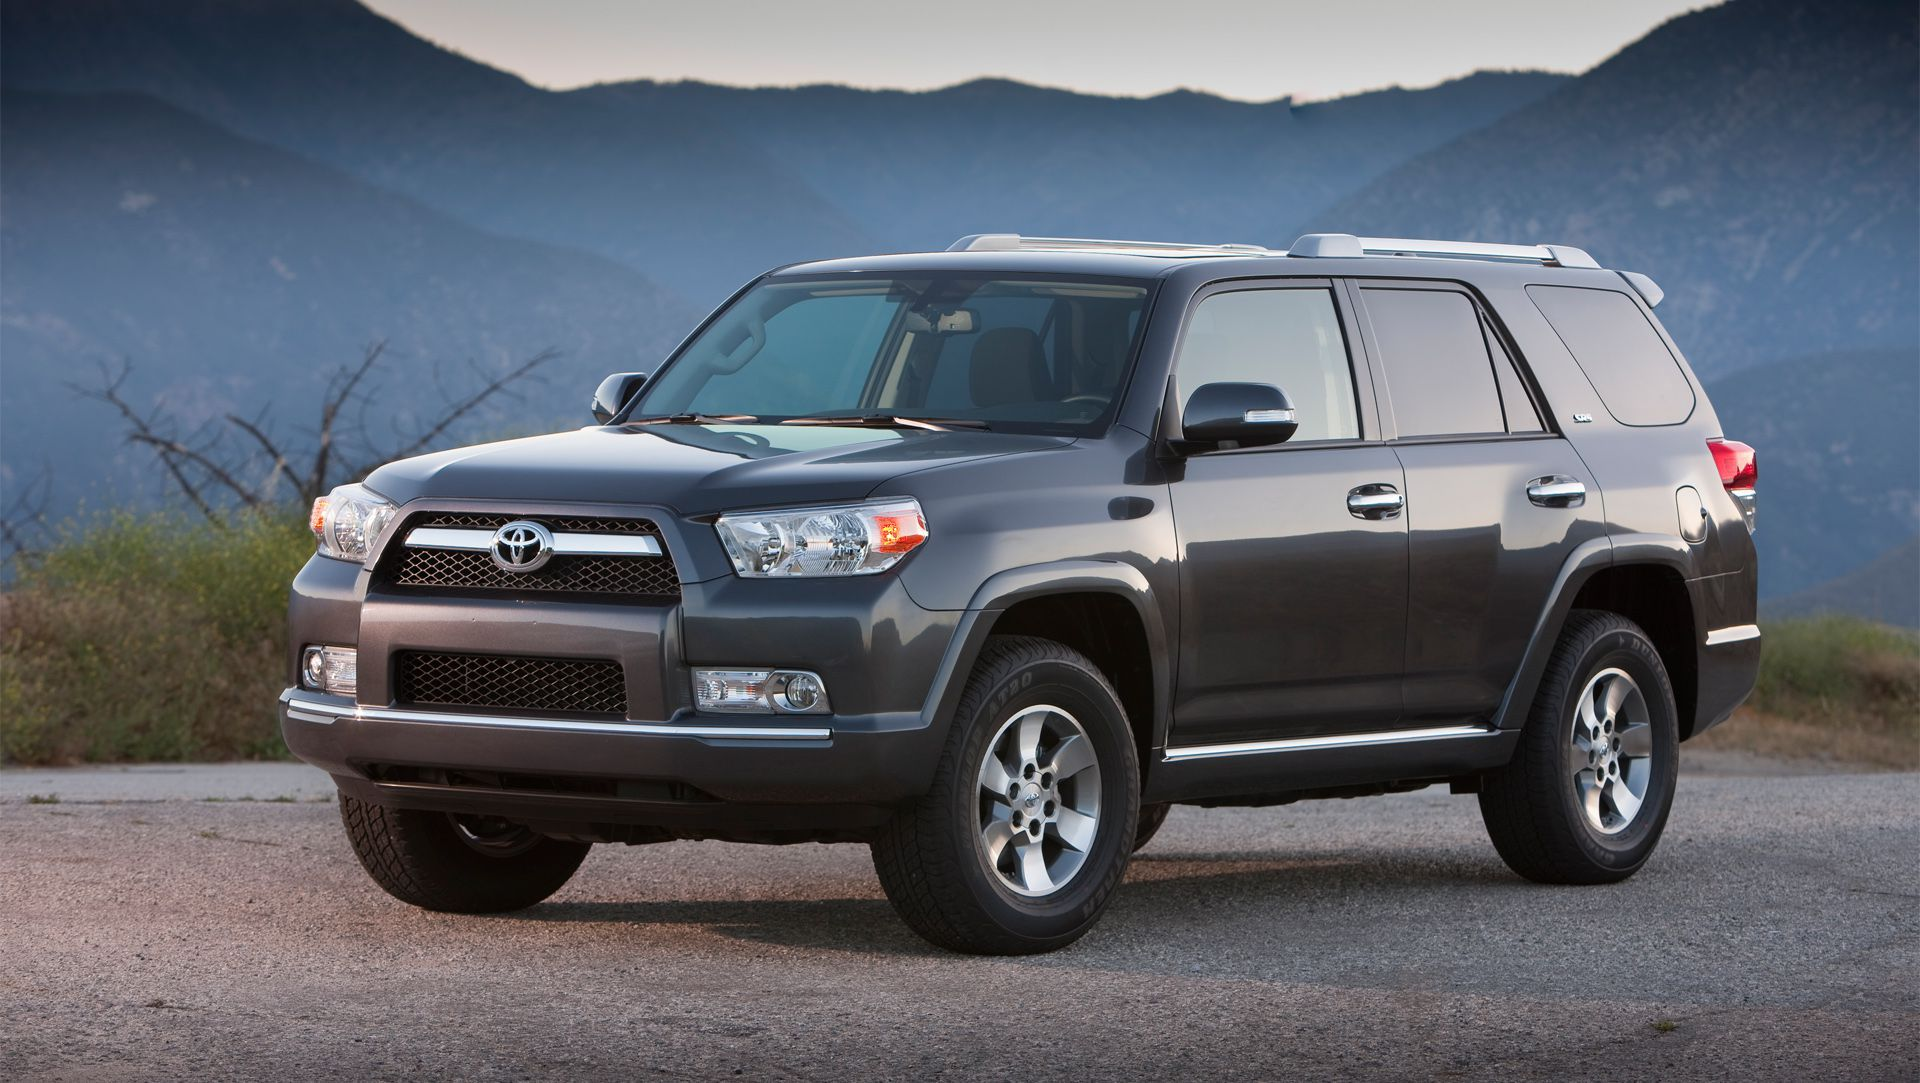 2013 Toyota 4runner Sets The Pace For True Suv Capability Auto Moto Japan Bullet